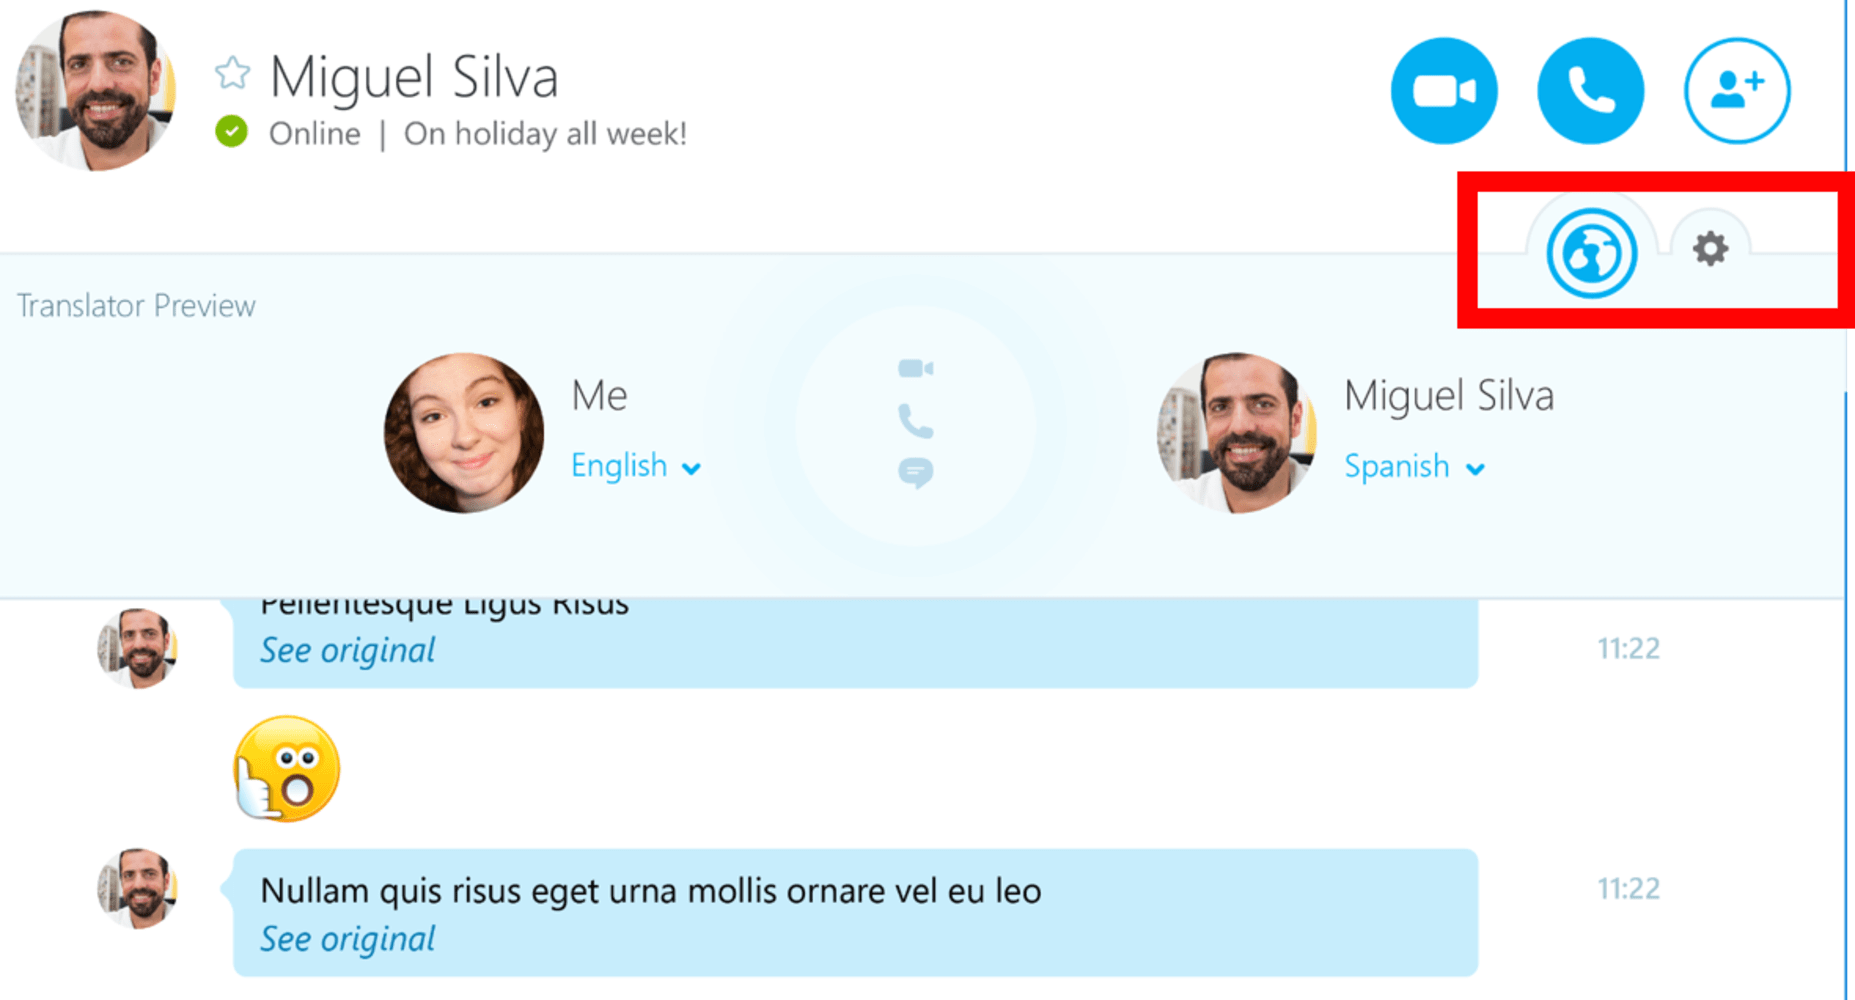 skype translator preview  for windows